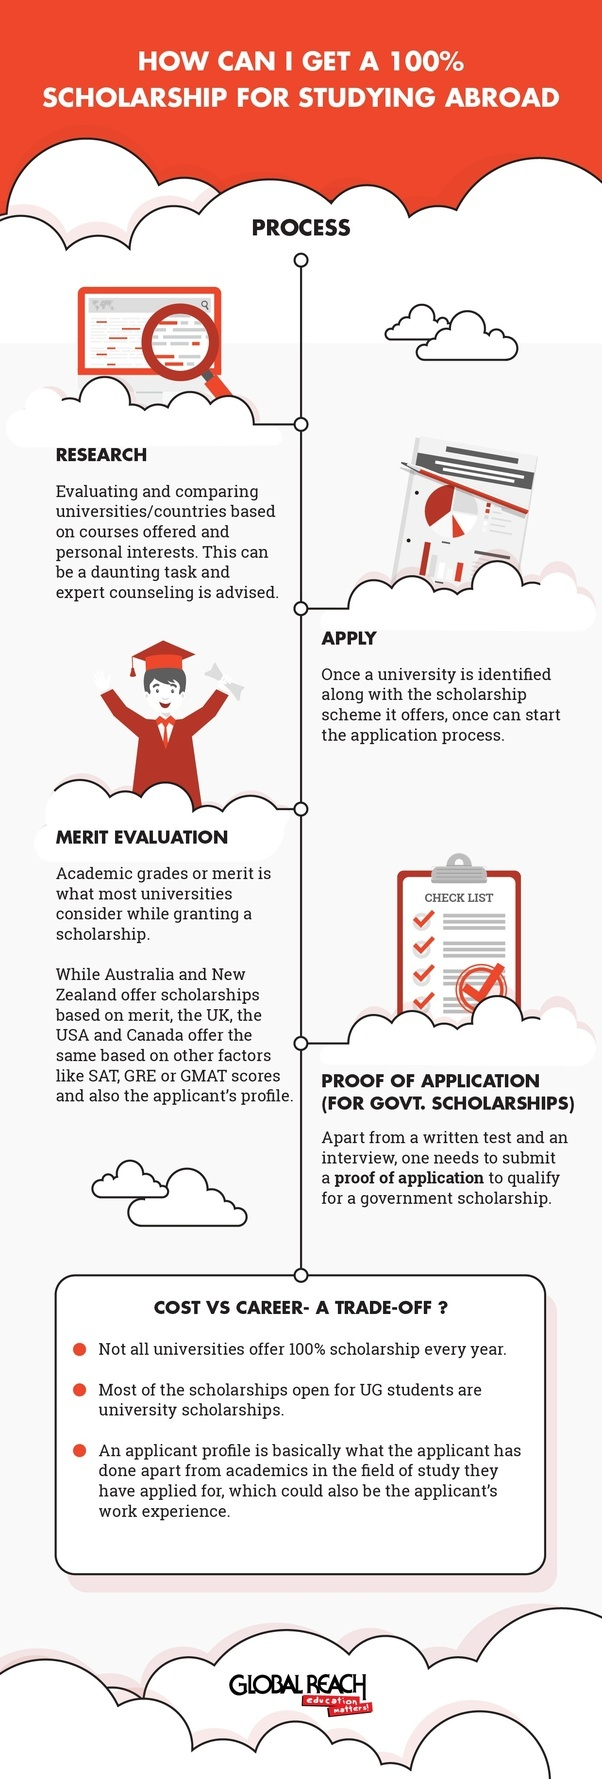 How to get a full scholarship to study abroad in Australia